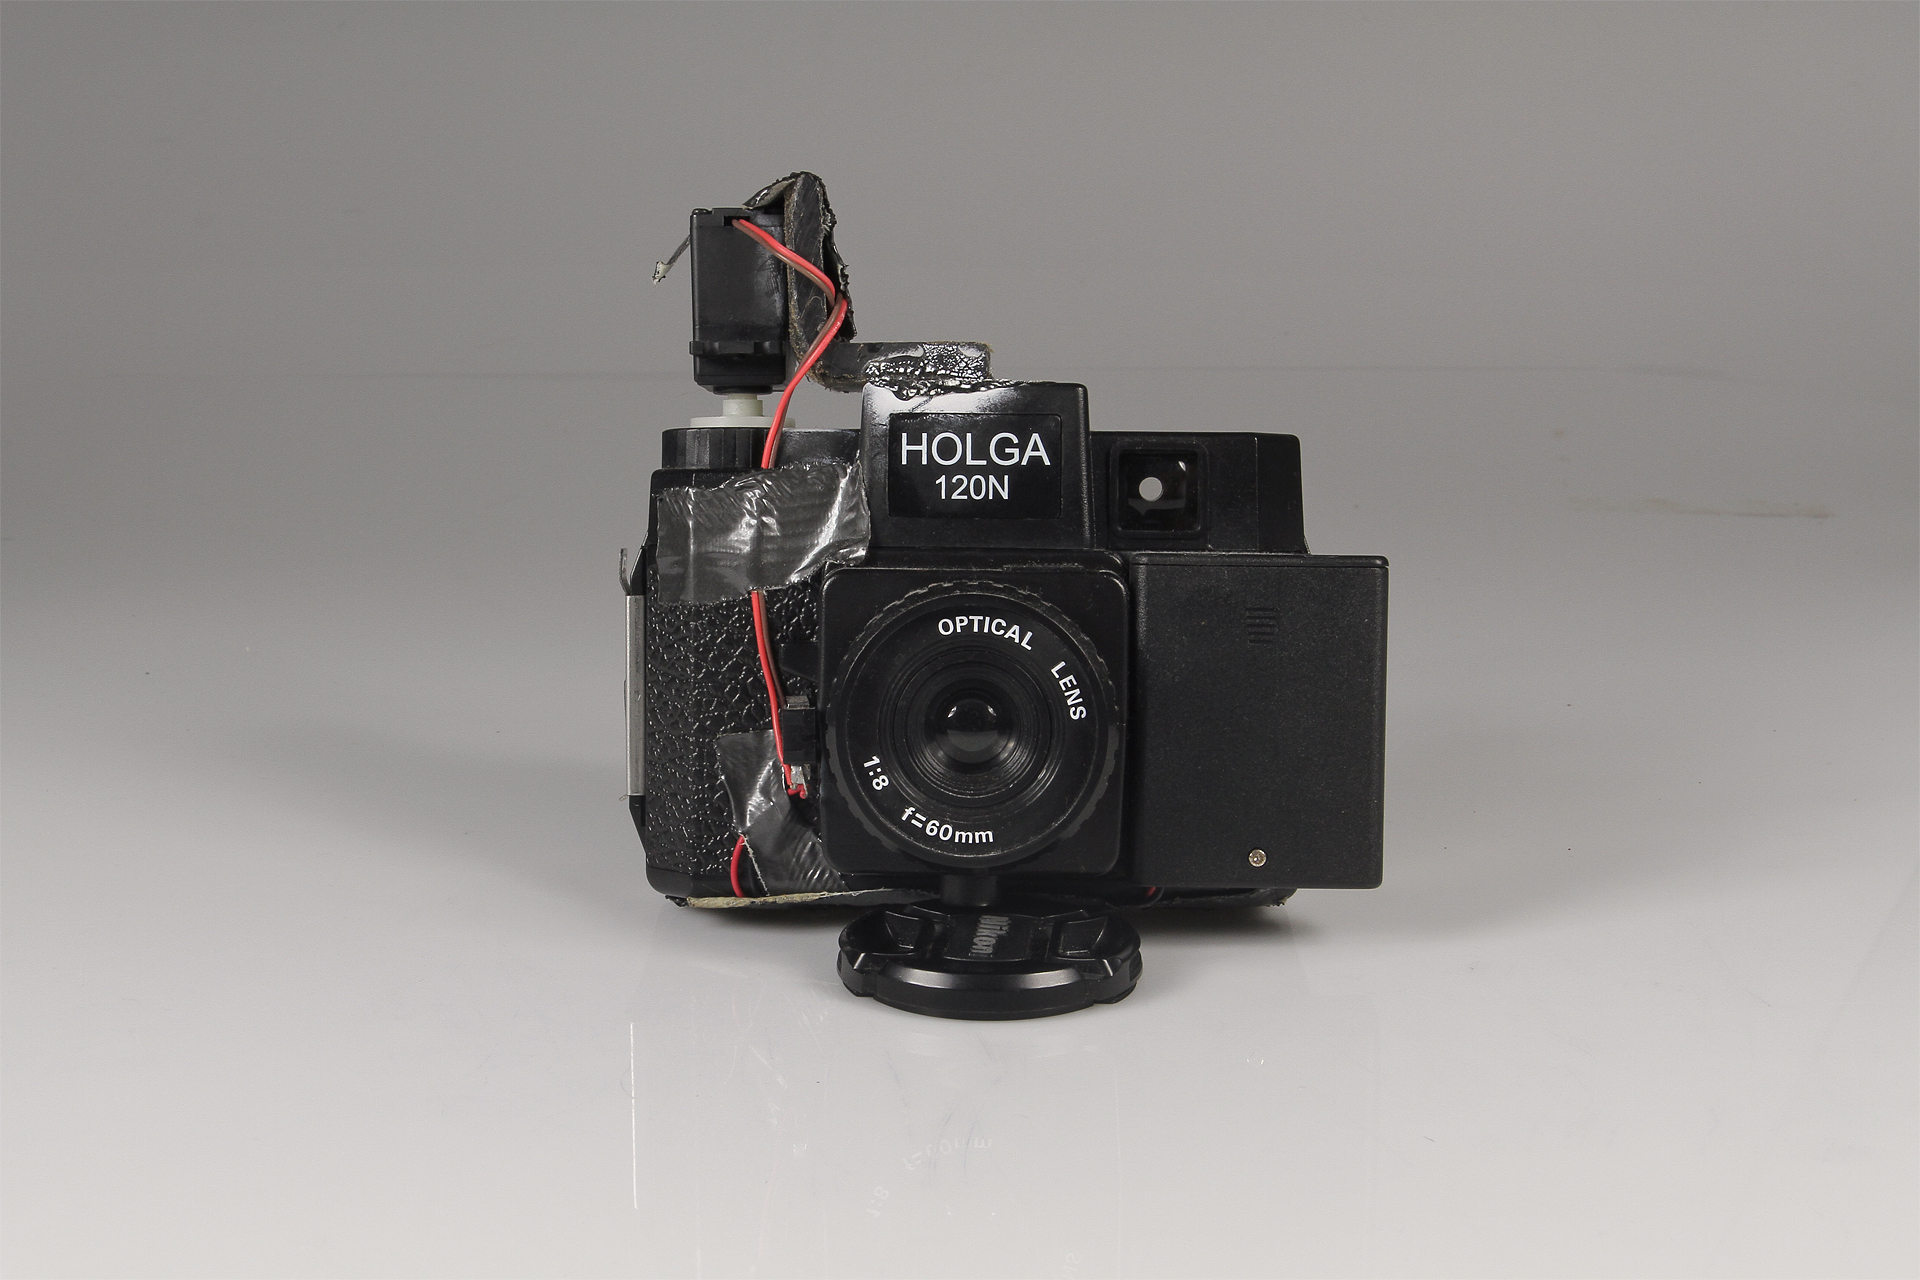 Holga Slitscan Camera  2013.  Modified Holga for Strip Photography.  Holga camera, modified servo motor, 3xAAA battery pack, SPST switch, plastic L bracket, black-rubberized 4x5 film (to make the slit in the camera), electrical wire, duct tape, super glue.